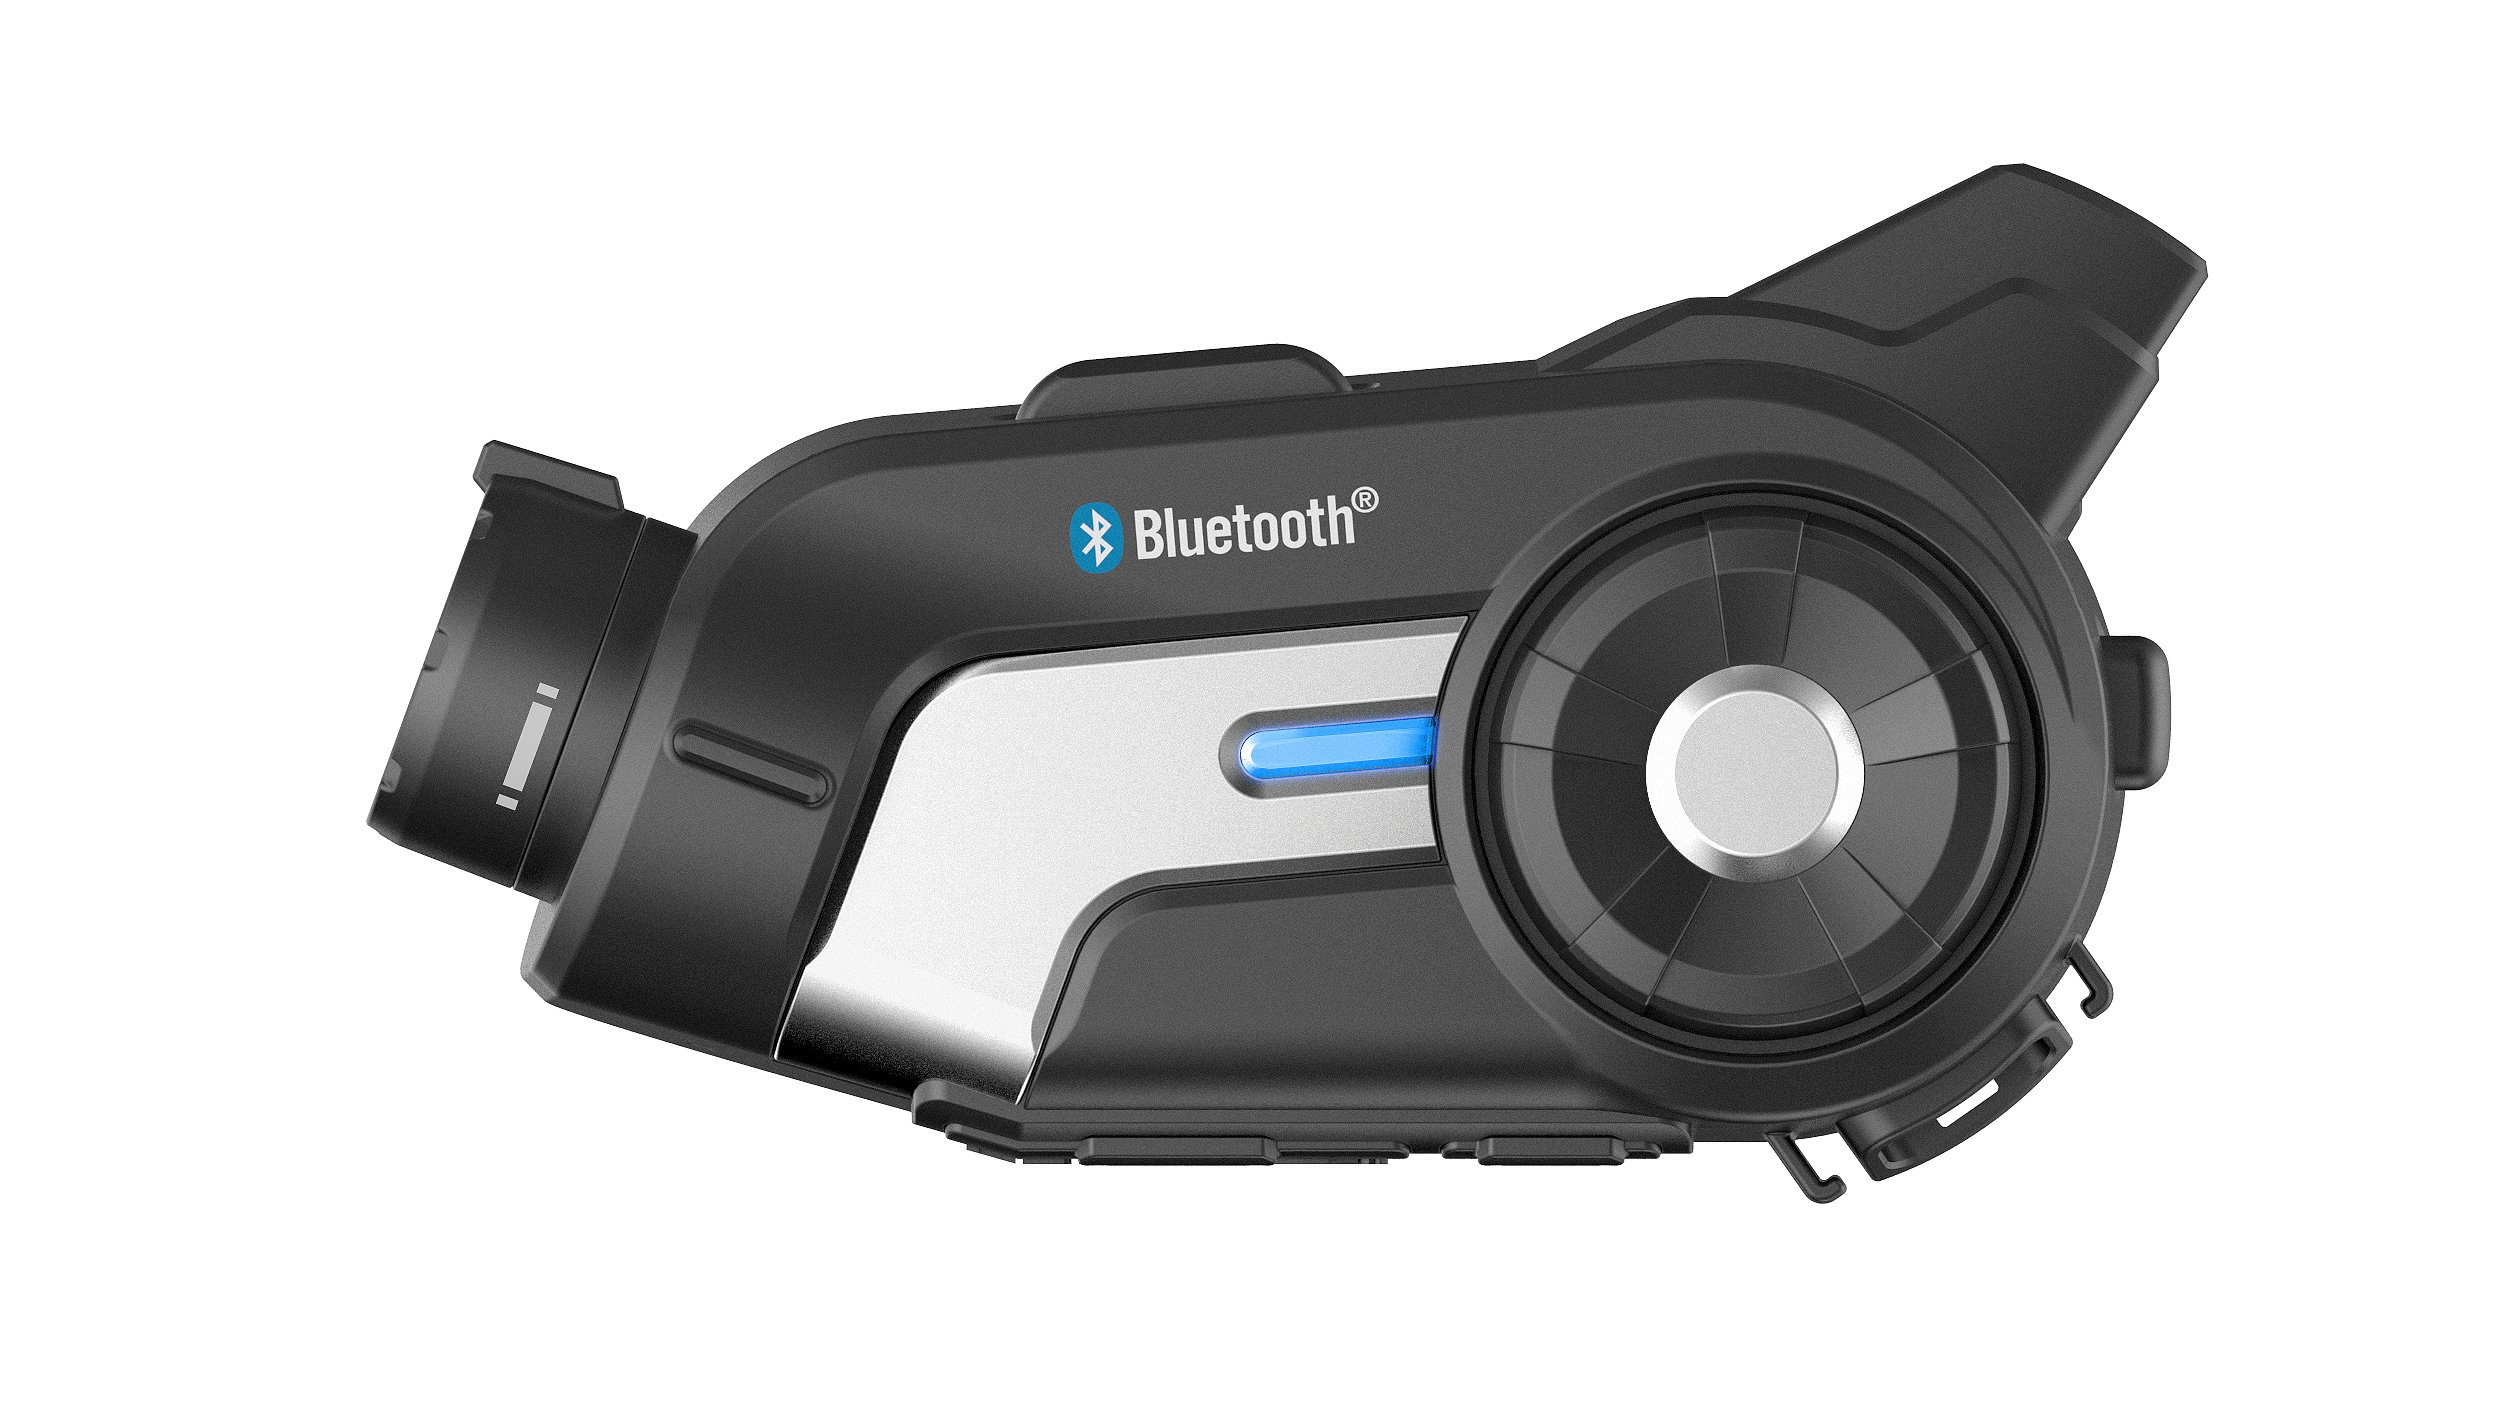 Sena 10C-01 Motorcycle Bluetooth Camera and Communication System by Sena